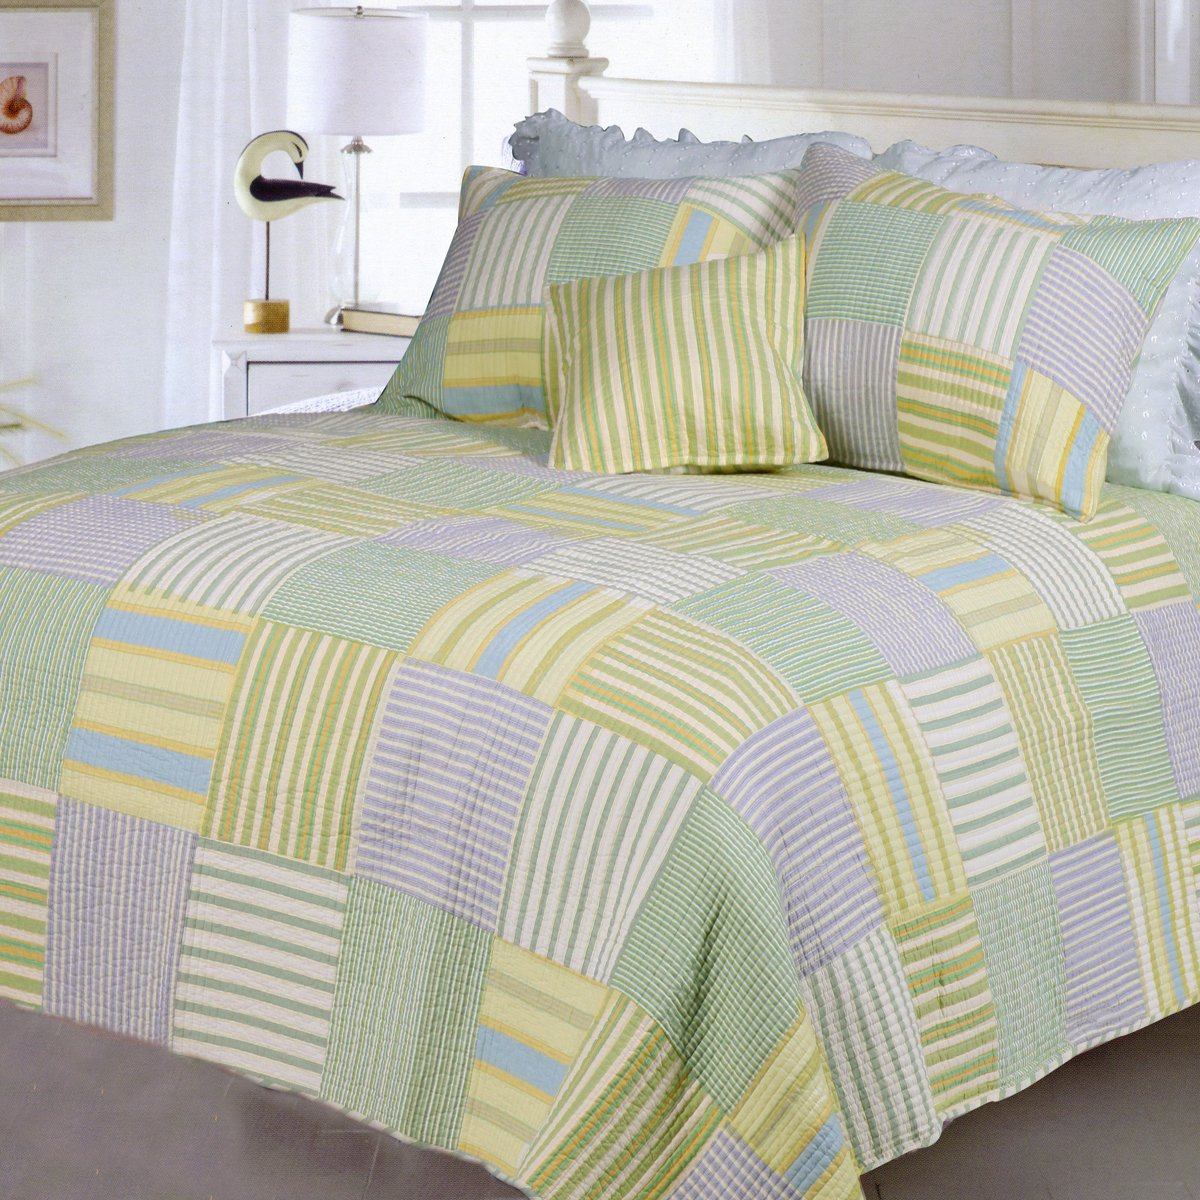 Cozy Line Home Fashions SPA Quilt Bedding Set, Green Yellow Blue Plaid Striped Patchwork 100% Cotton, Reversible Coverlet, Bedspread Gifts for Women, Men(Green Patchwork, King - 3 Piece)